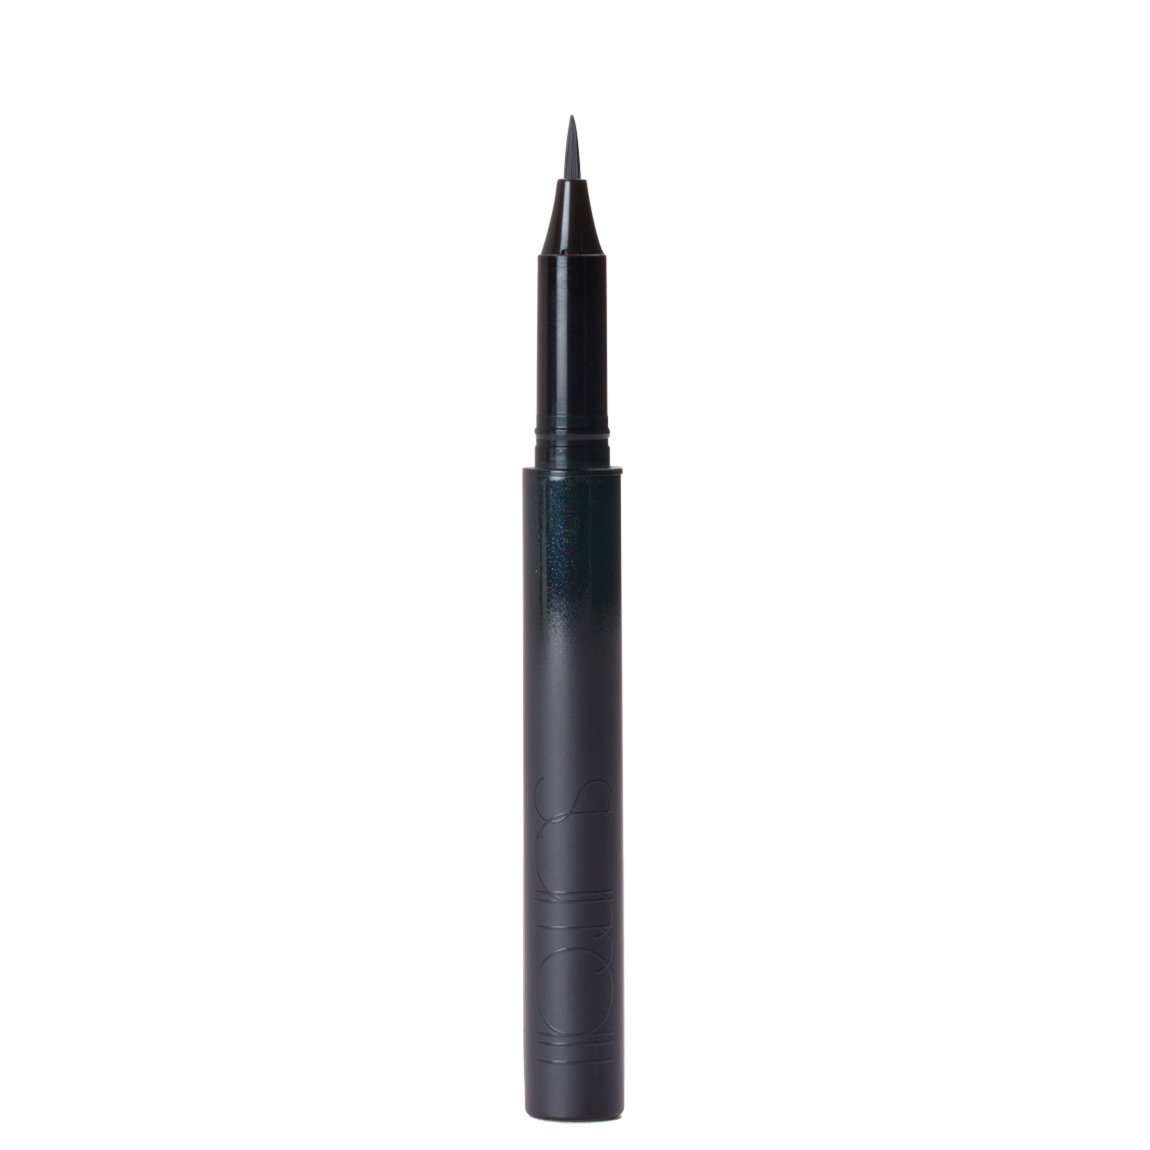 Surratt Beauty Auto-Graphique Liner Chat Noir alternative view 1.